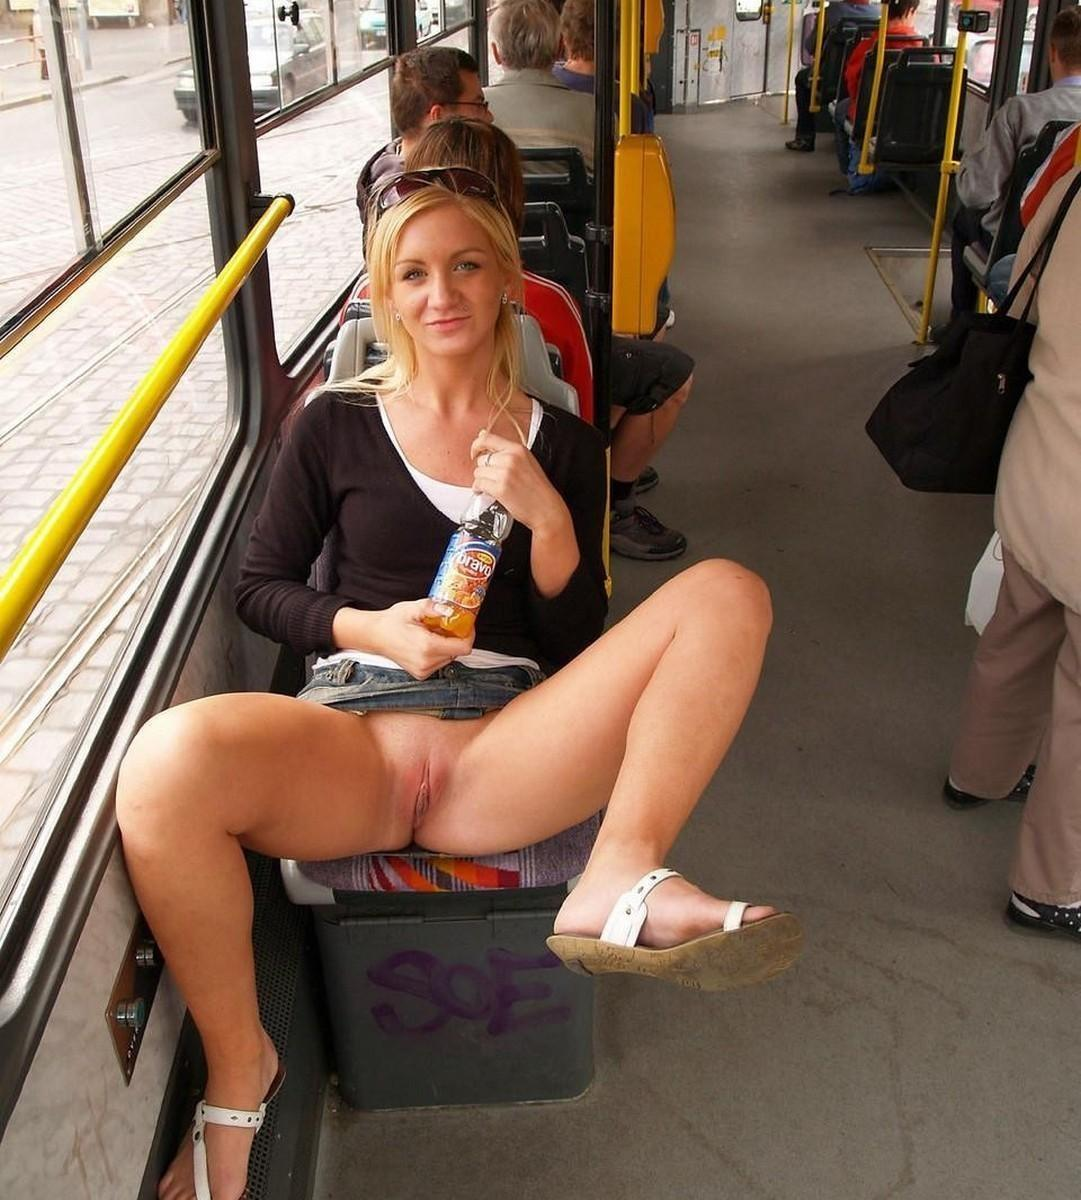 Xxx sex girls flashing pussys on the bus delivery with